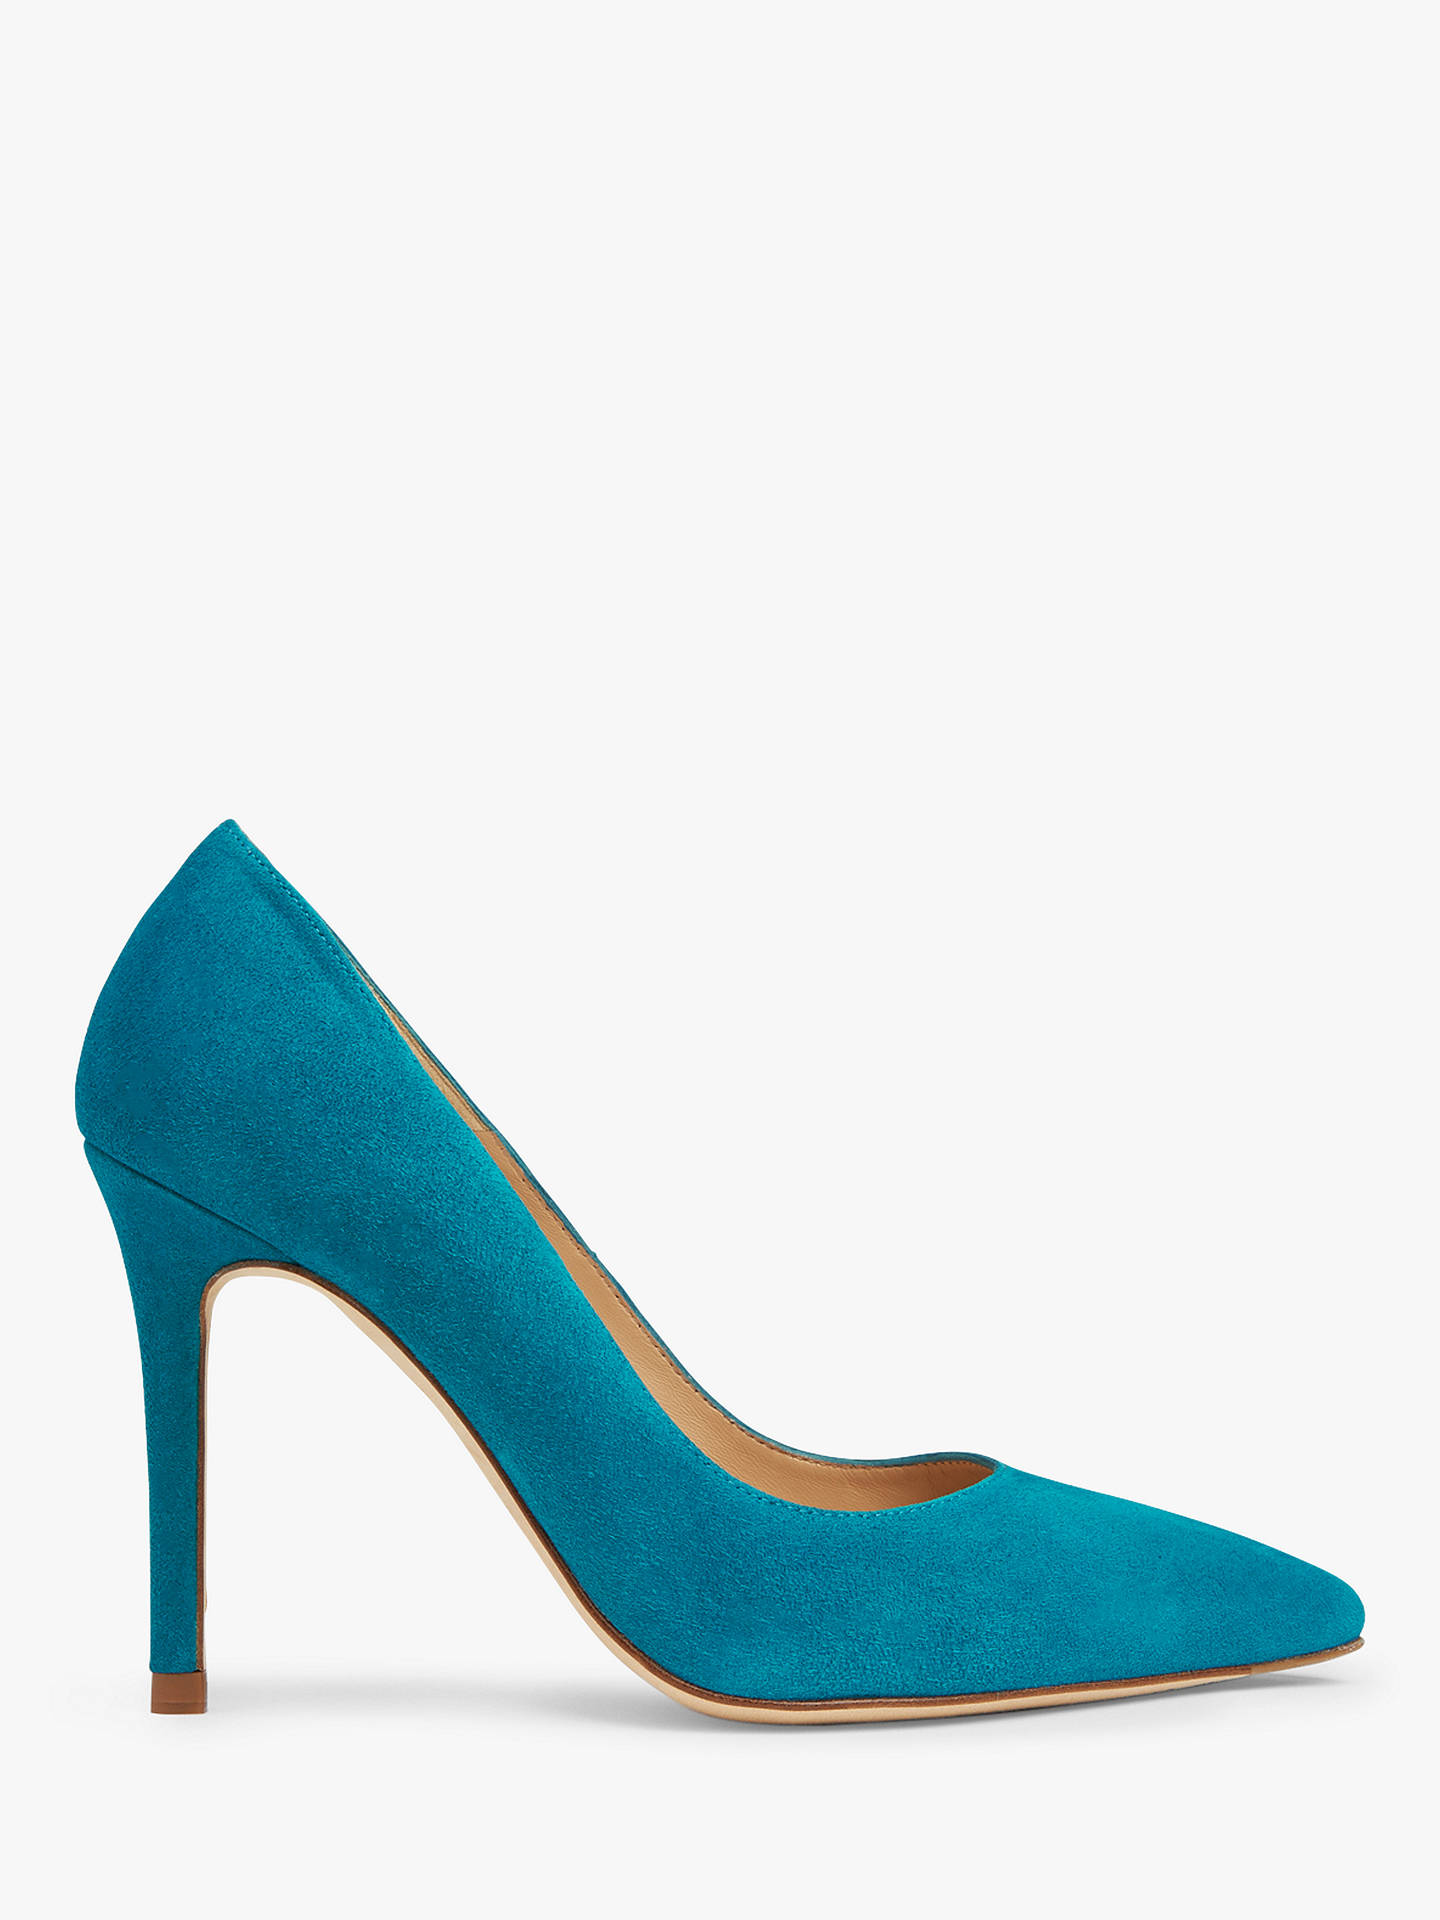 Buy L.K.Bennett Fern Court Shoes, Blue Turquoise Suede, 5 Online at johnlewis.com